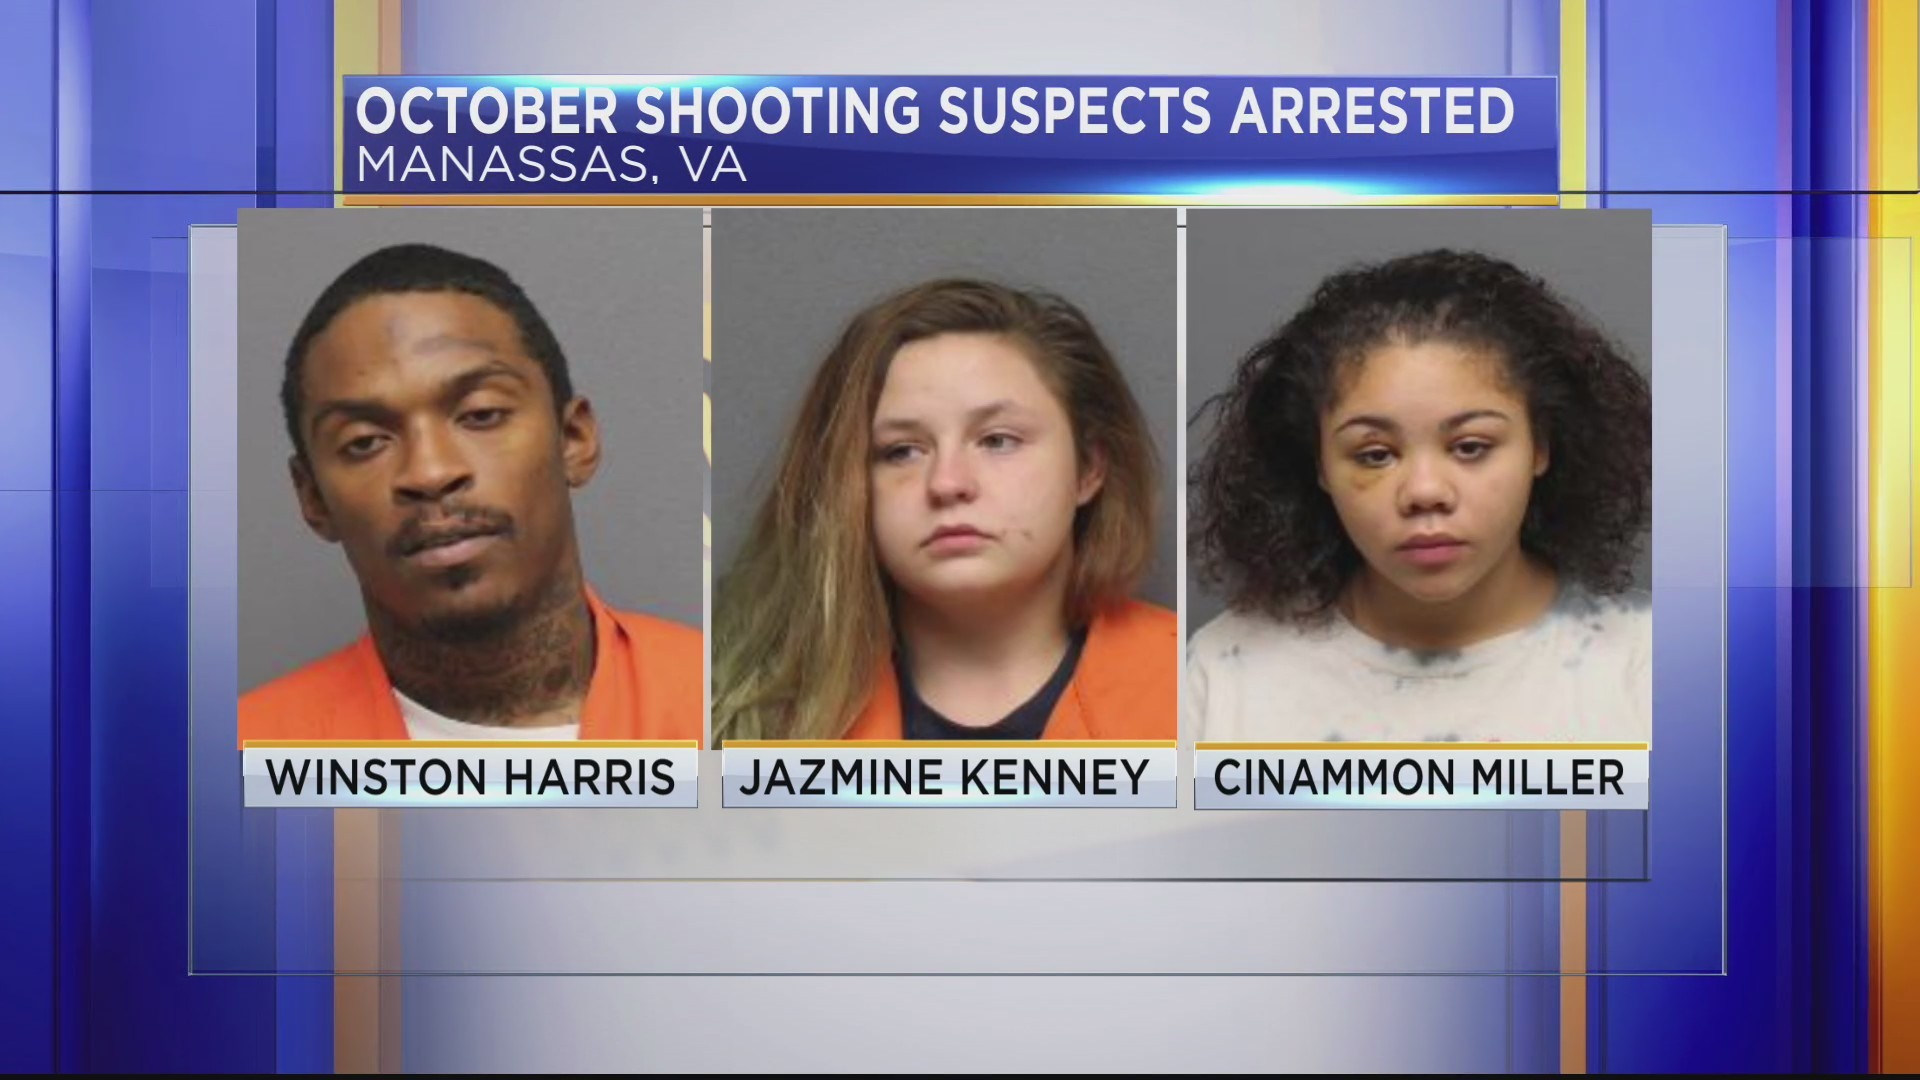 Police arrest three suspects involved in shooting